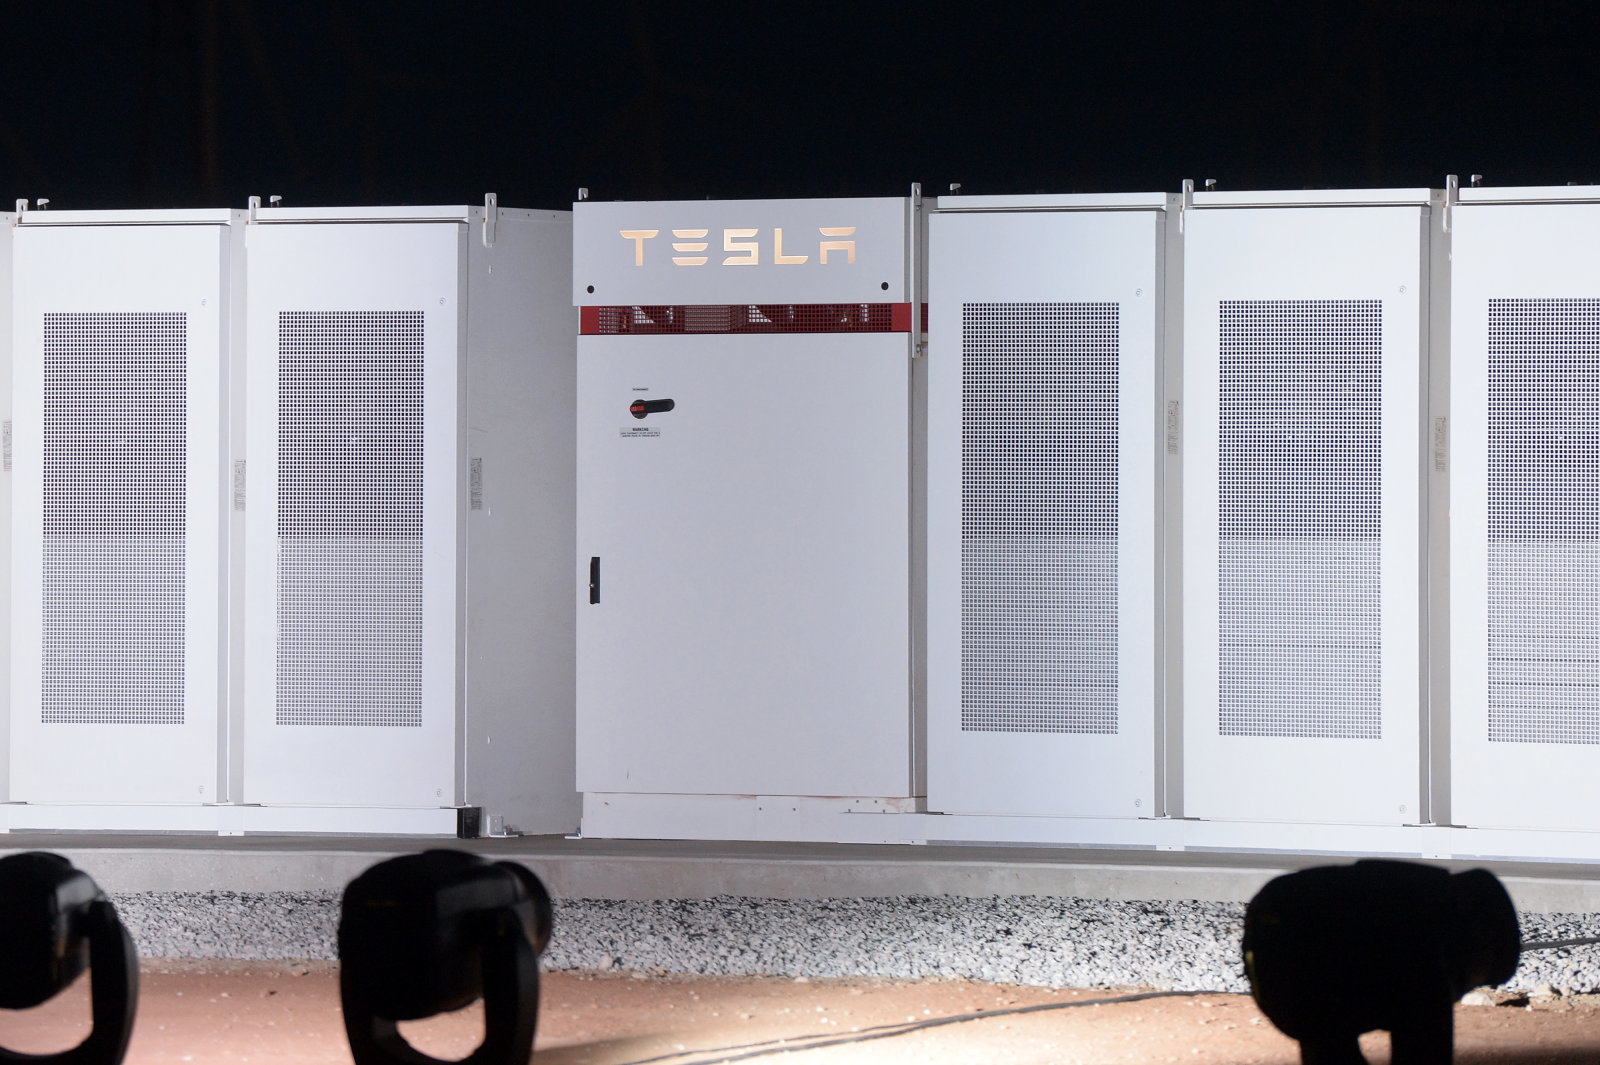 Tesla Inc. Powerpacks that will be used to form the world's largest lithium-ion battery stand on display at the Hornsdale wind farm, operated by Neoen SAS, near Jamestown, South Australia, on Friday, Sept. 29, 2017. Tesla Chief Executive Officer Elon Musk descended on South Australia on Friday to unveil progress on a giant battery seen critical to averting crippling power shortages in the state. Photographer: Carla Gottgens/Bloomberg via Getty Images